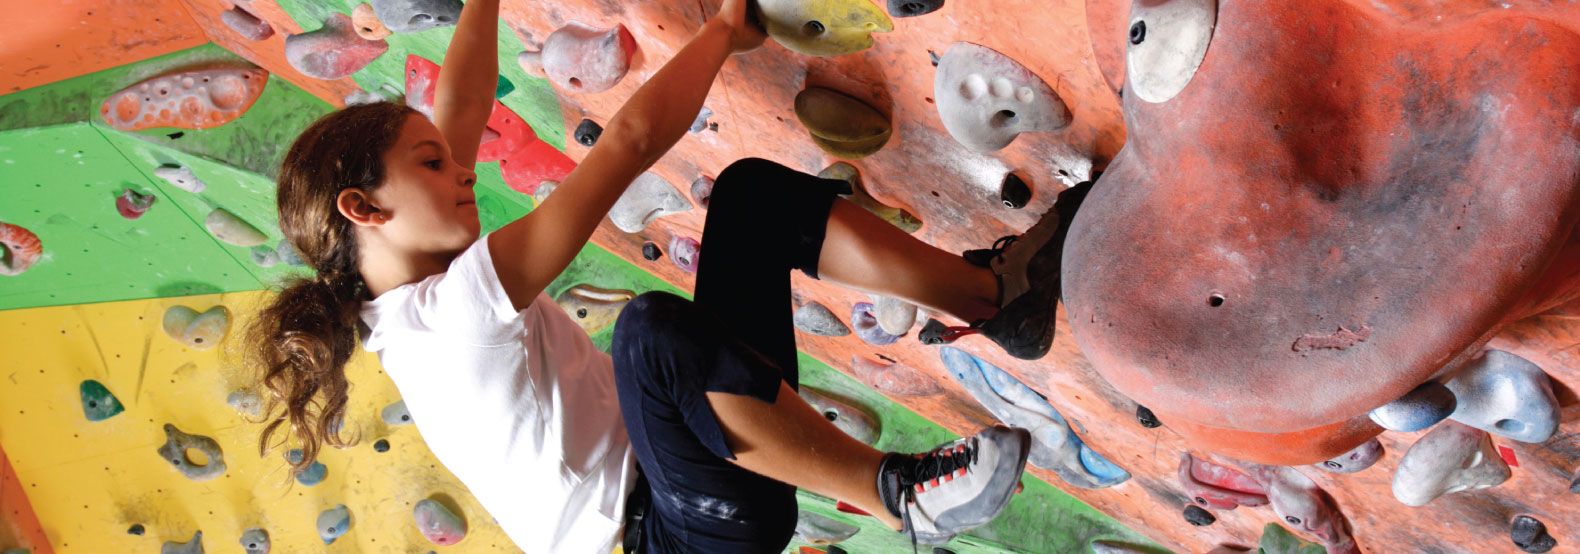 Why Your Kids Should Try Rock Climbing in Sacramento This Summer!